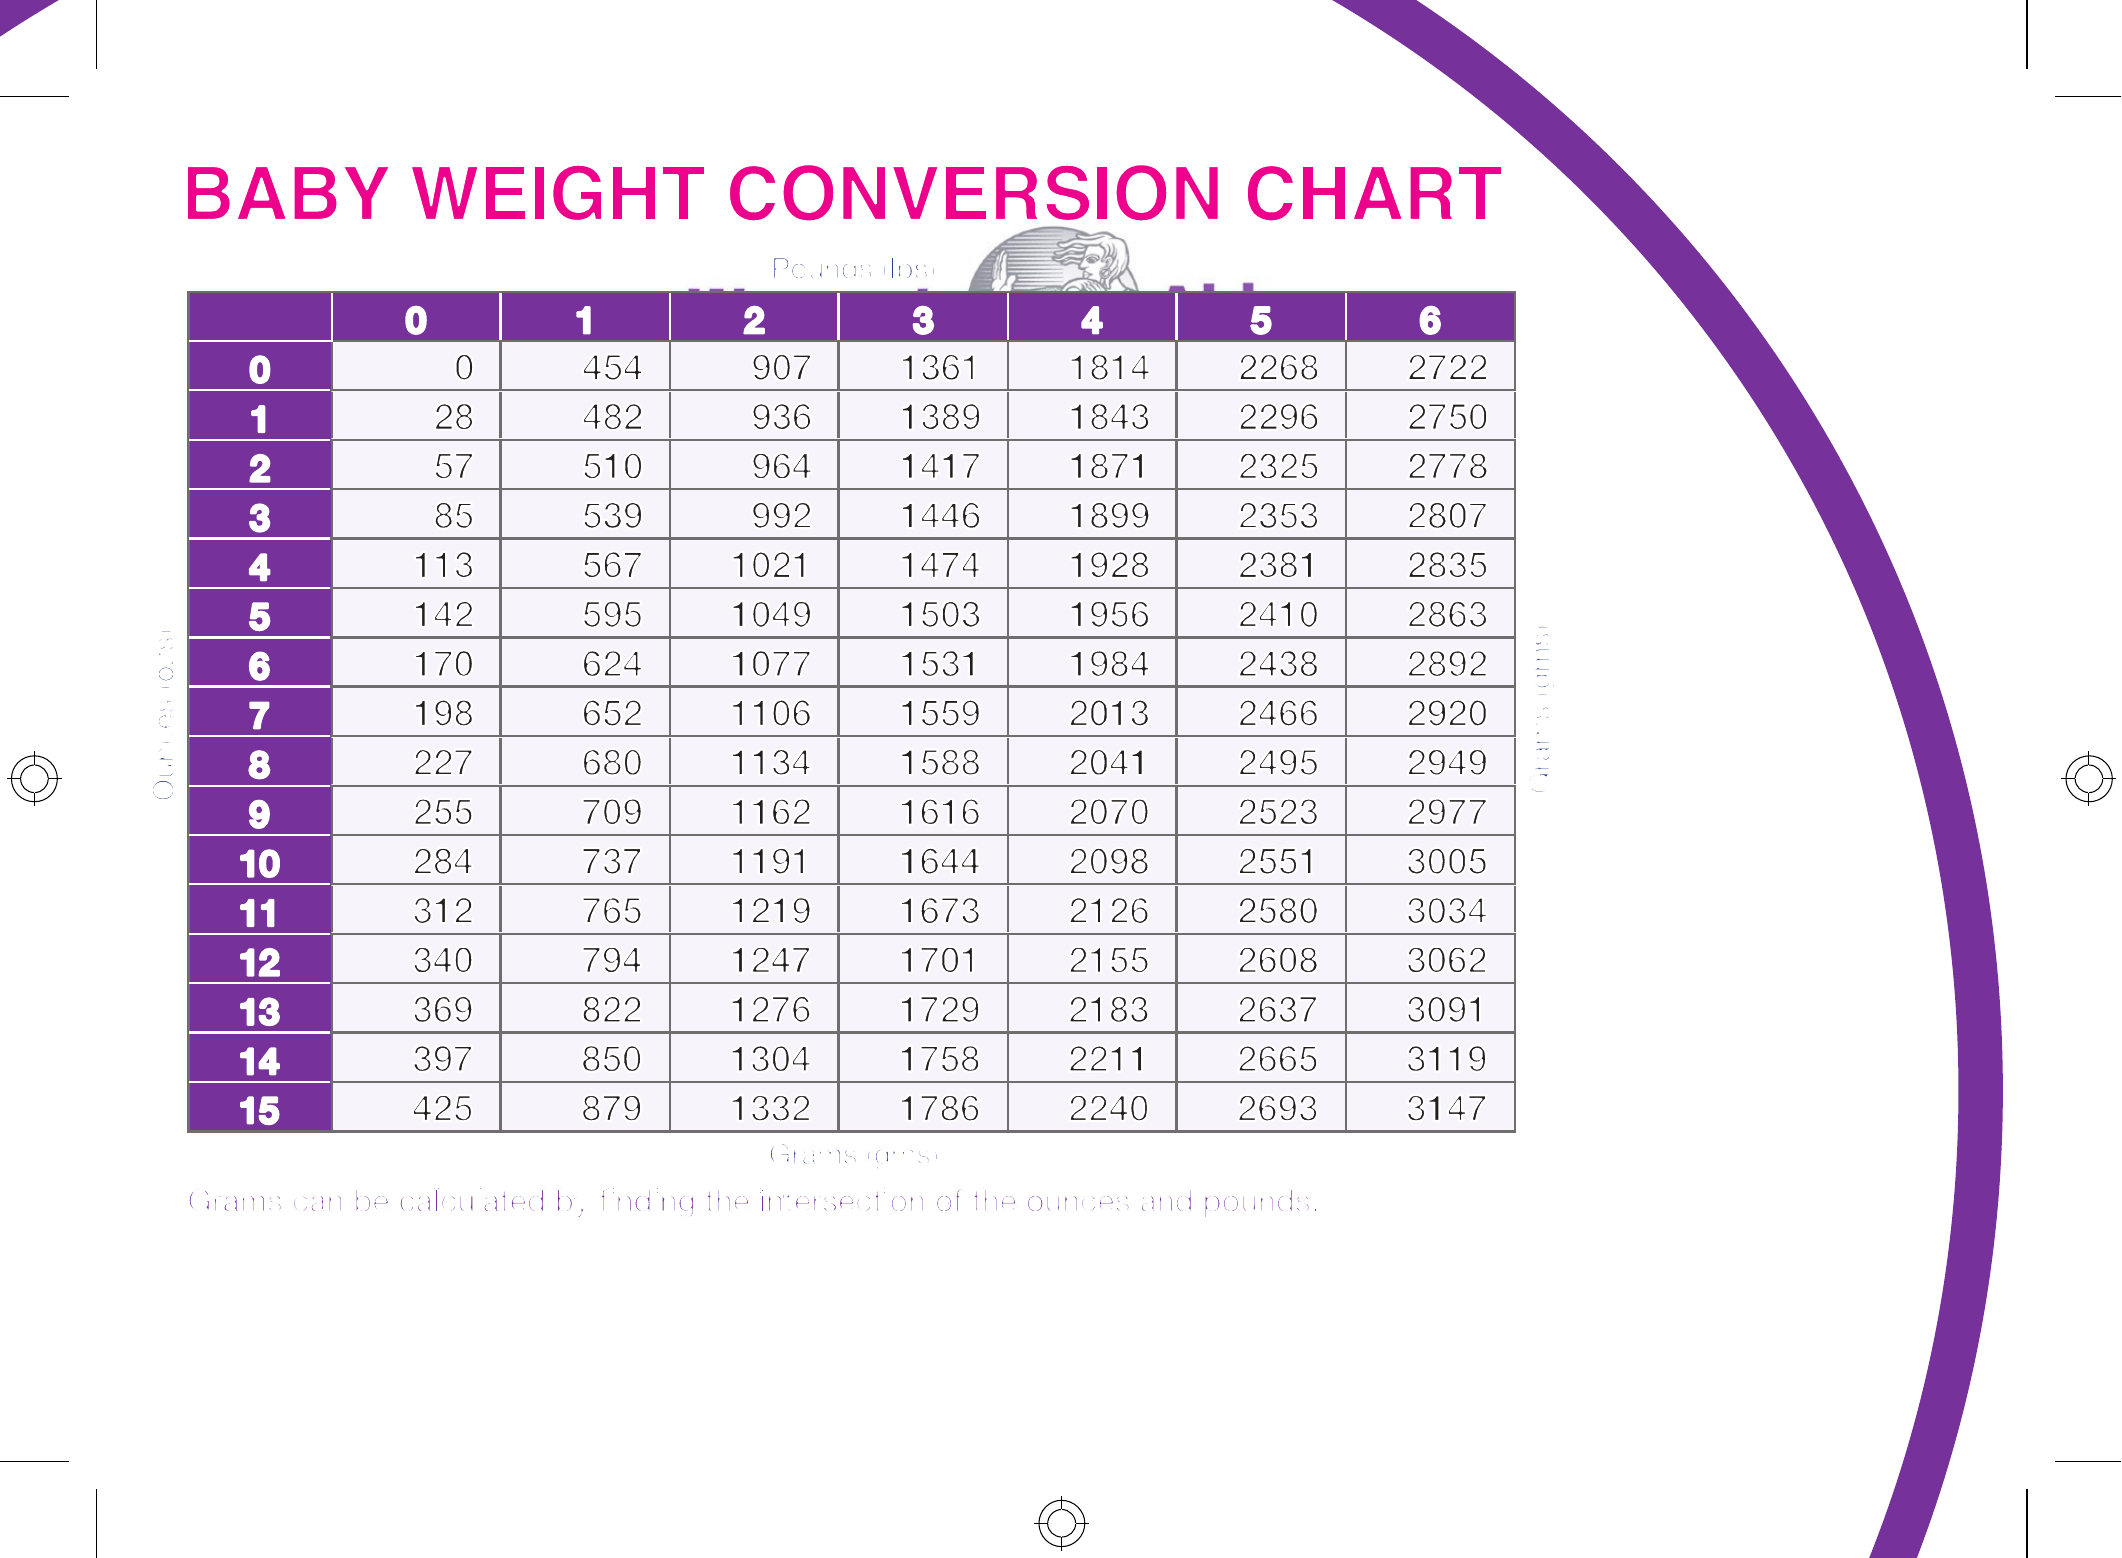 Paper weight conversion chart custom paper academic service paper weight conversion chart nvjuhfo Images